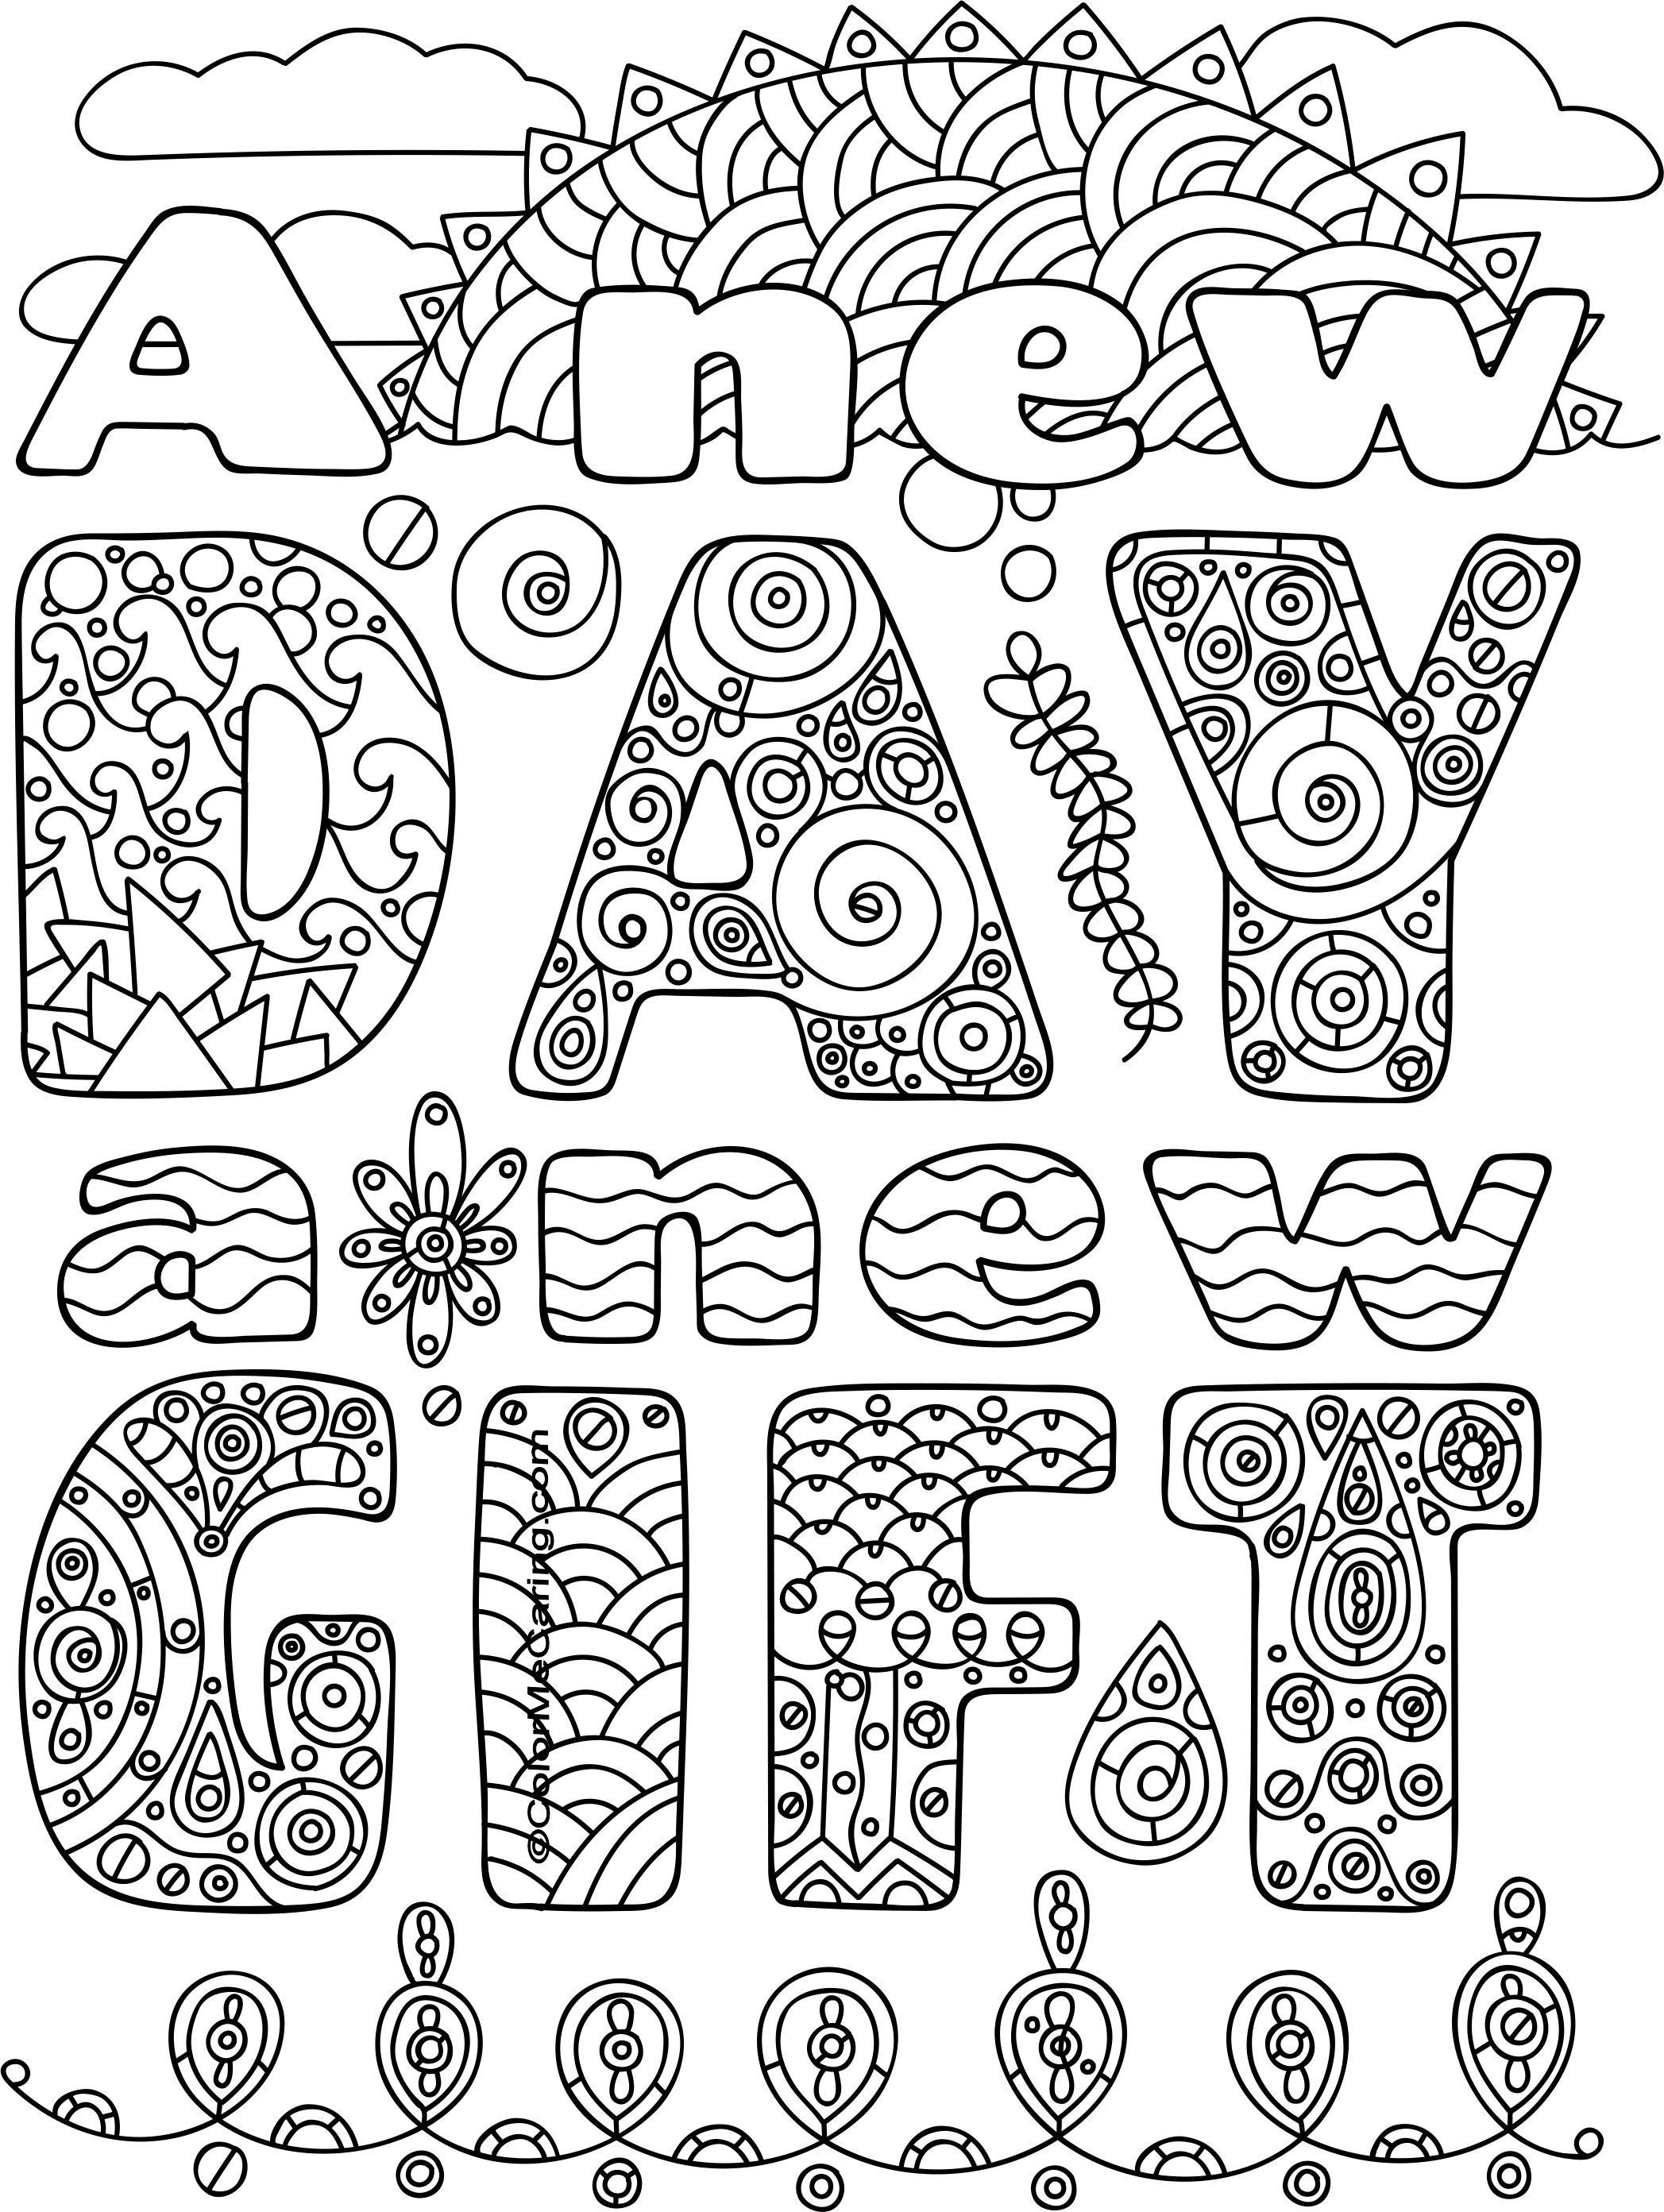 Free Printable New Year Coloring Pages | Coloring For Grown Ups - New Year Coloring Pages Free Printables